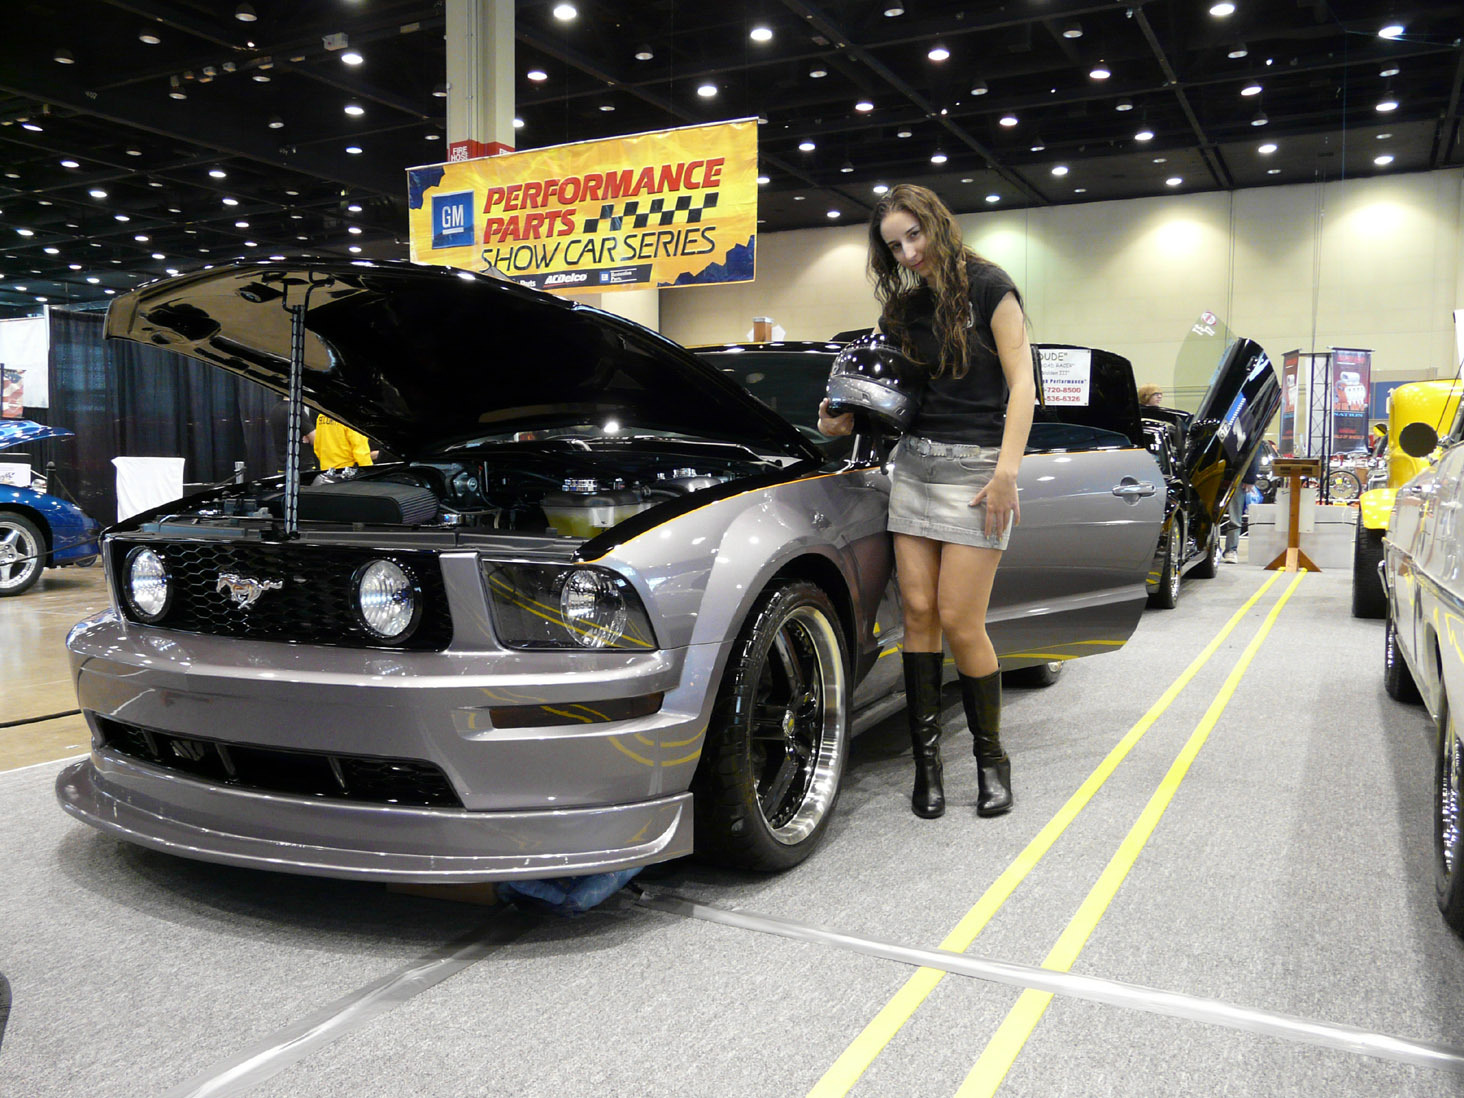 KiddZX2's 2006 Ford Mustang